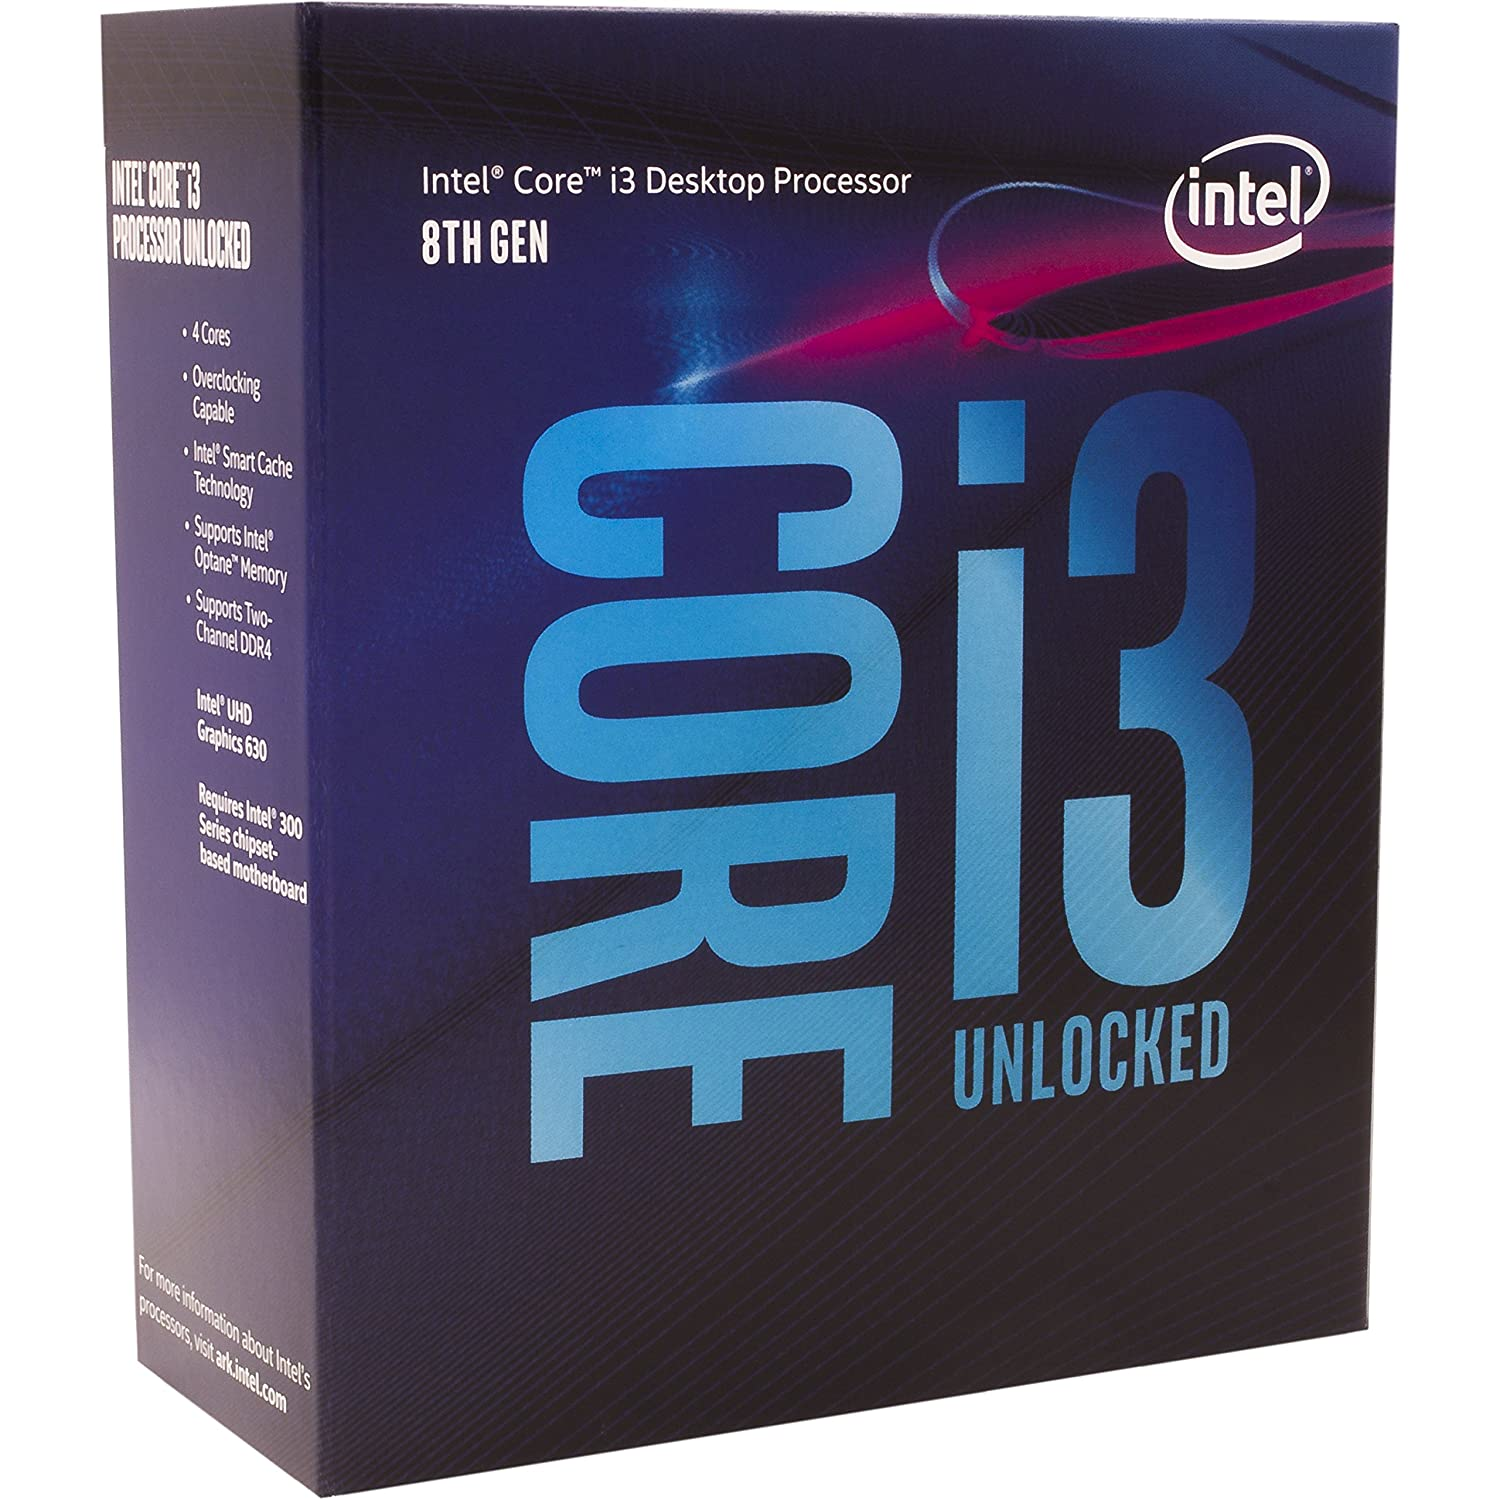 Intel 8th Gen Core i3-8350K Processor